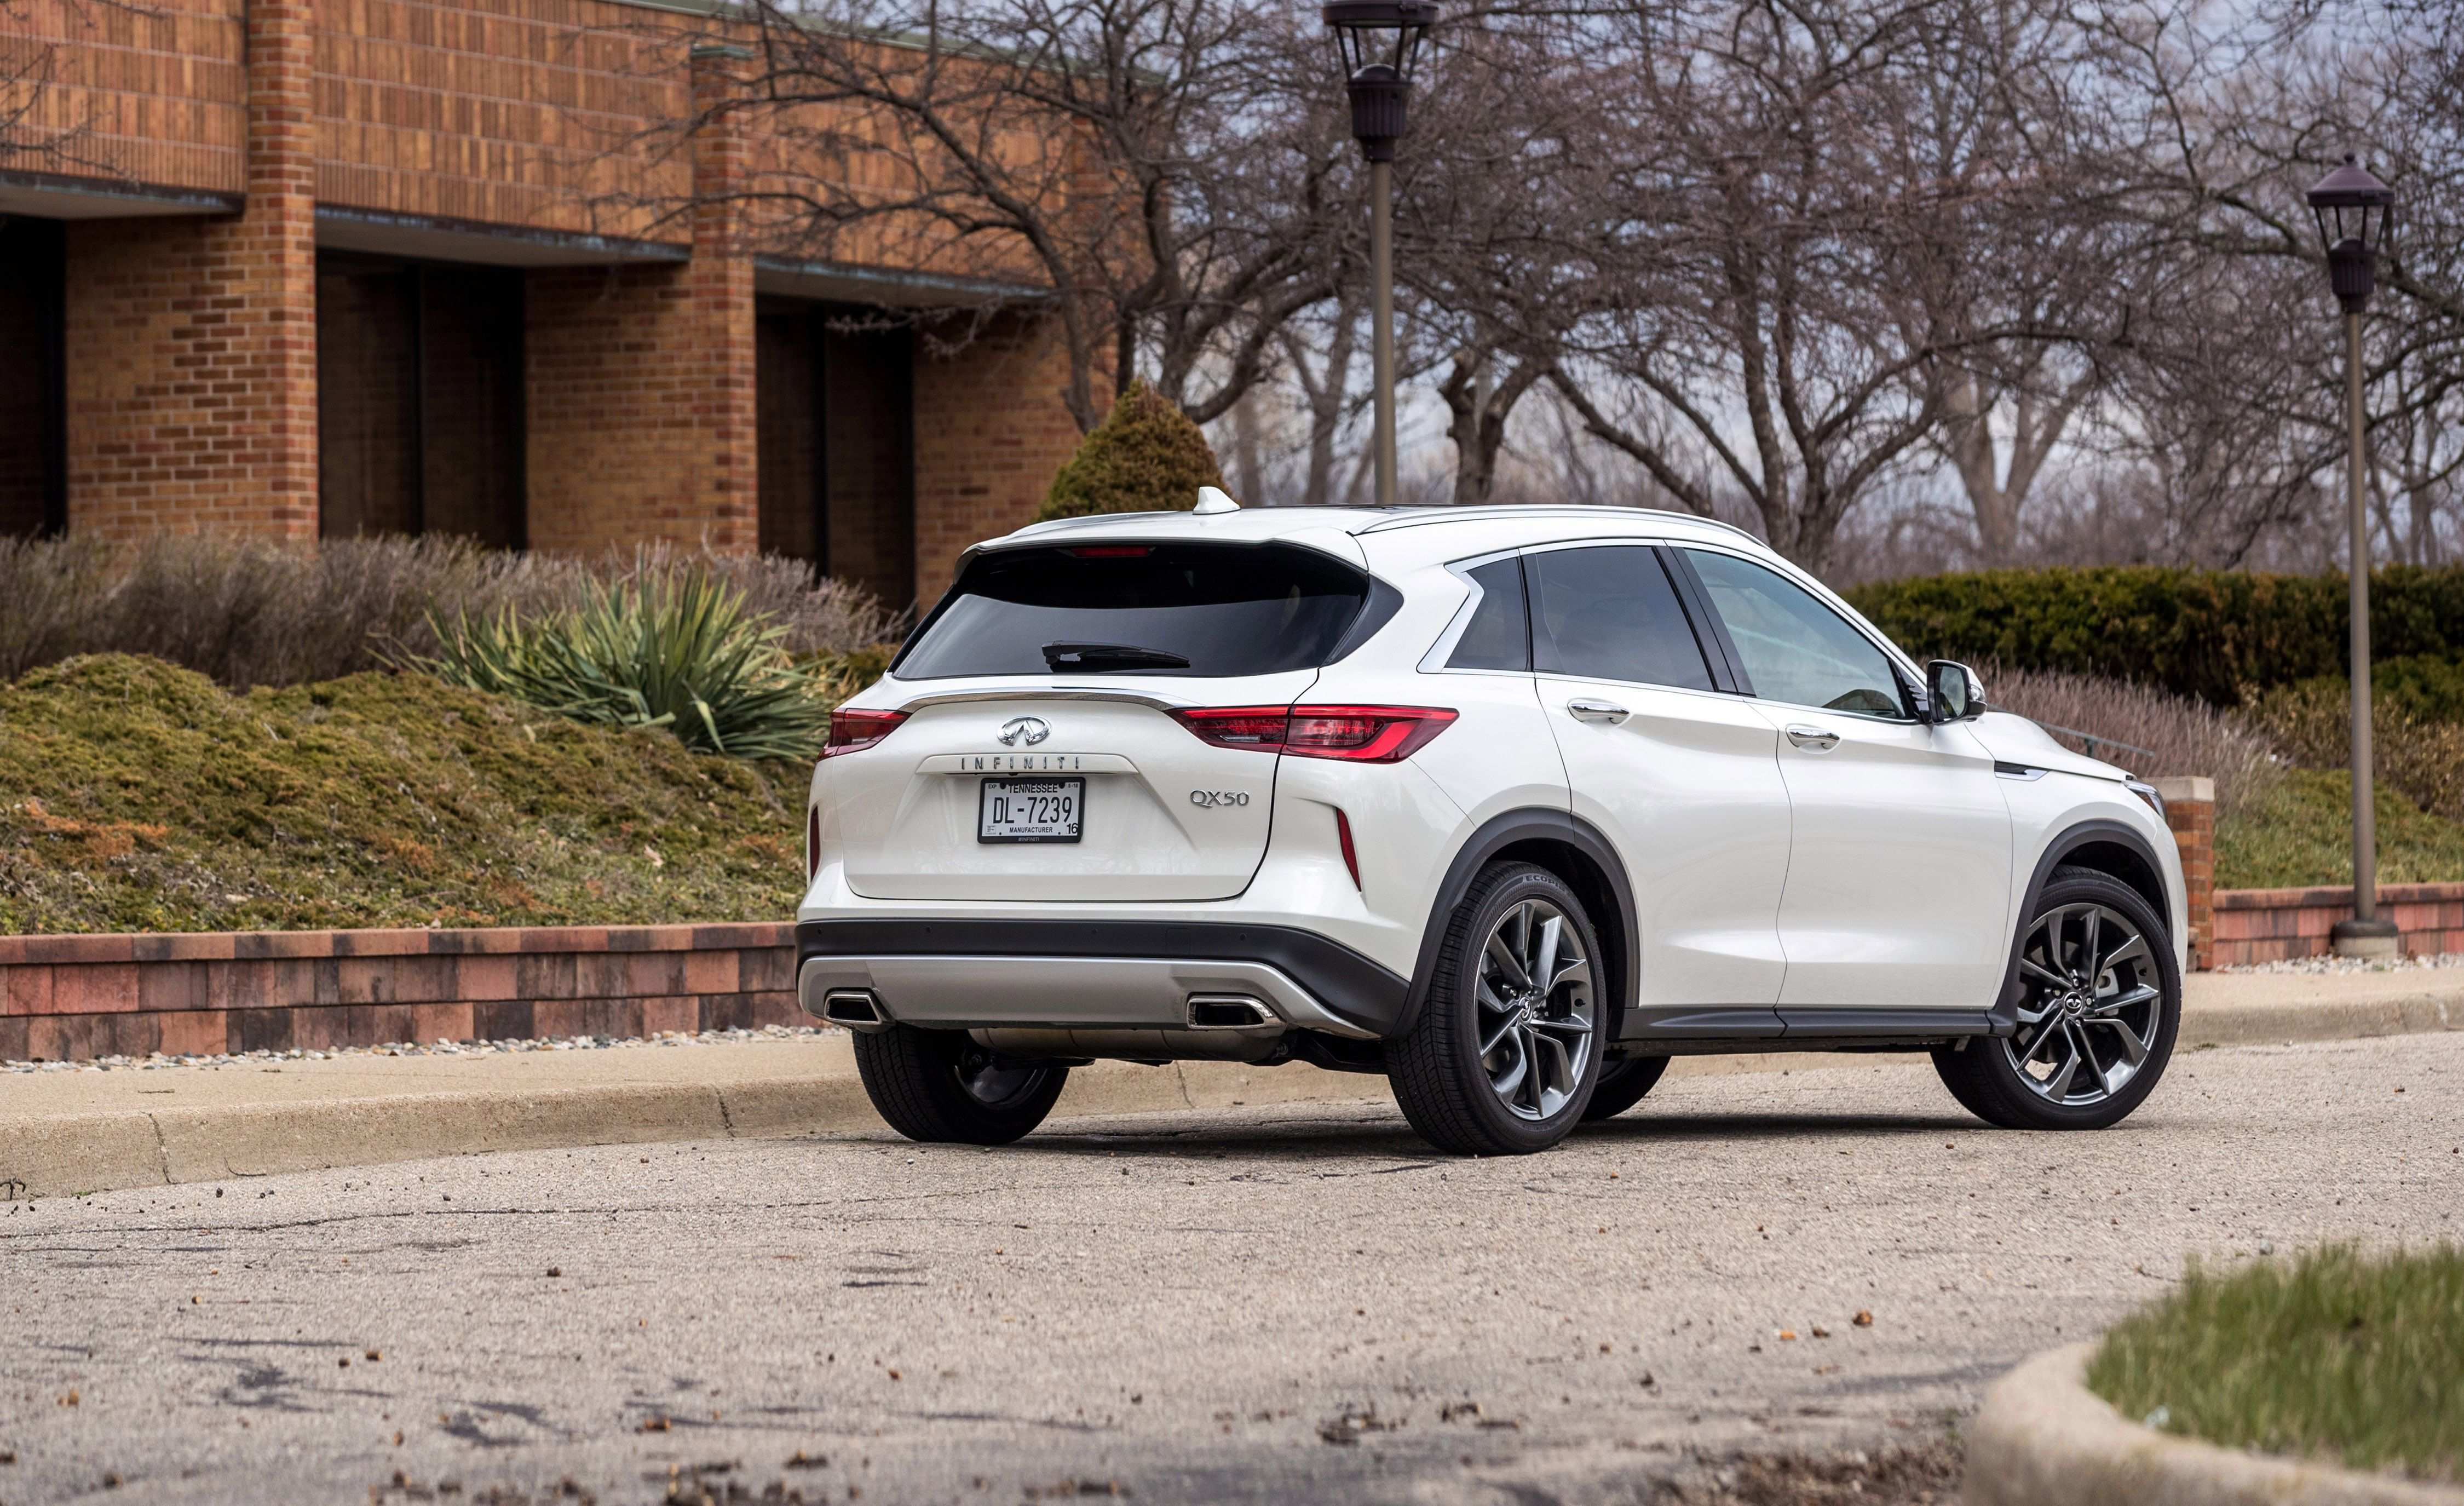 21 Best Review 2019 Infiniti Qx50 Wiki Photos by 2019 Infiniti Qx50 Wiki